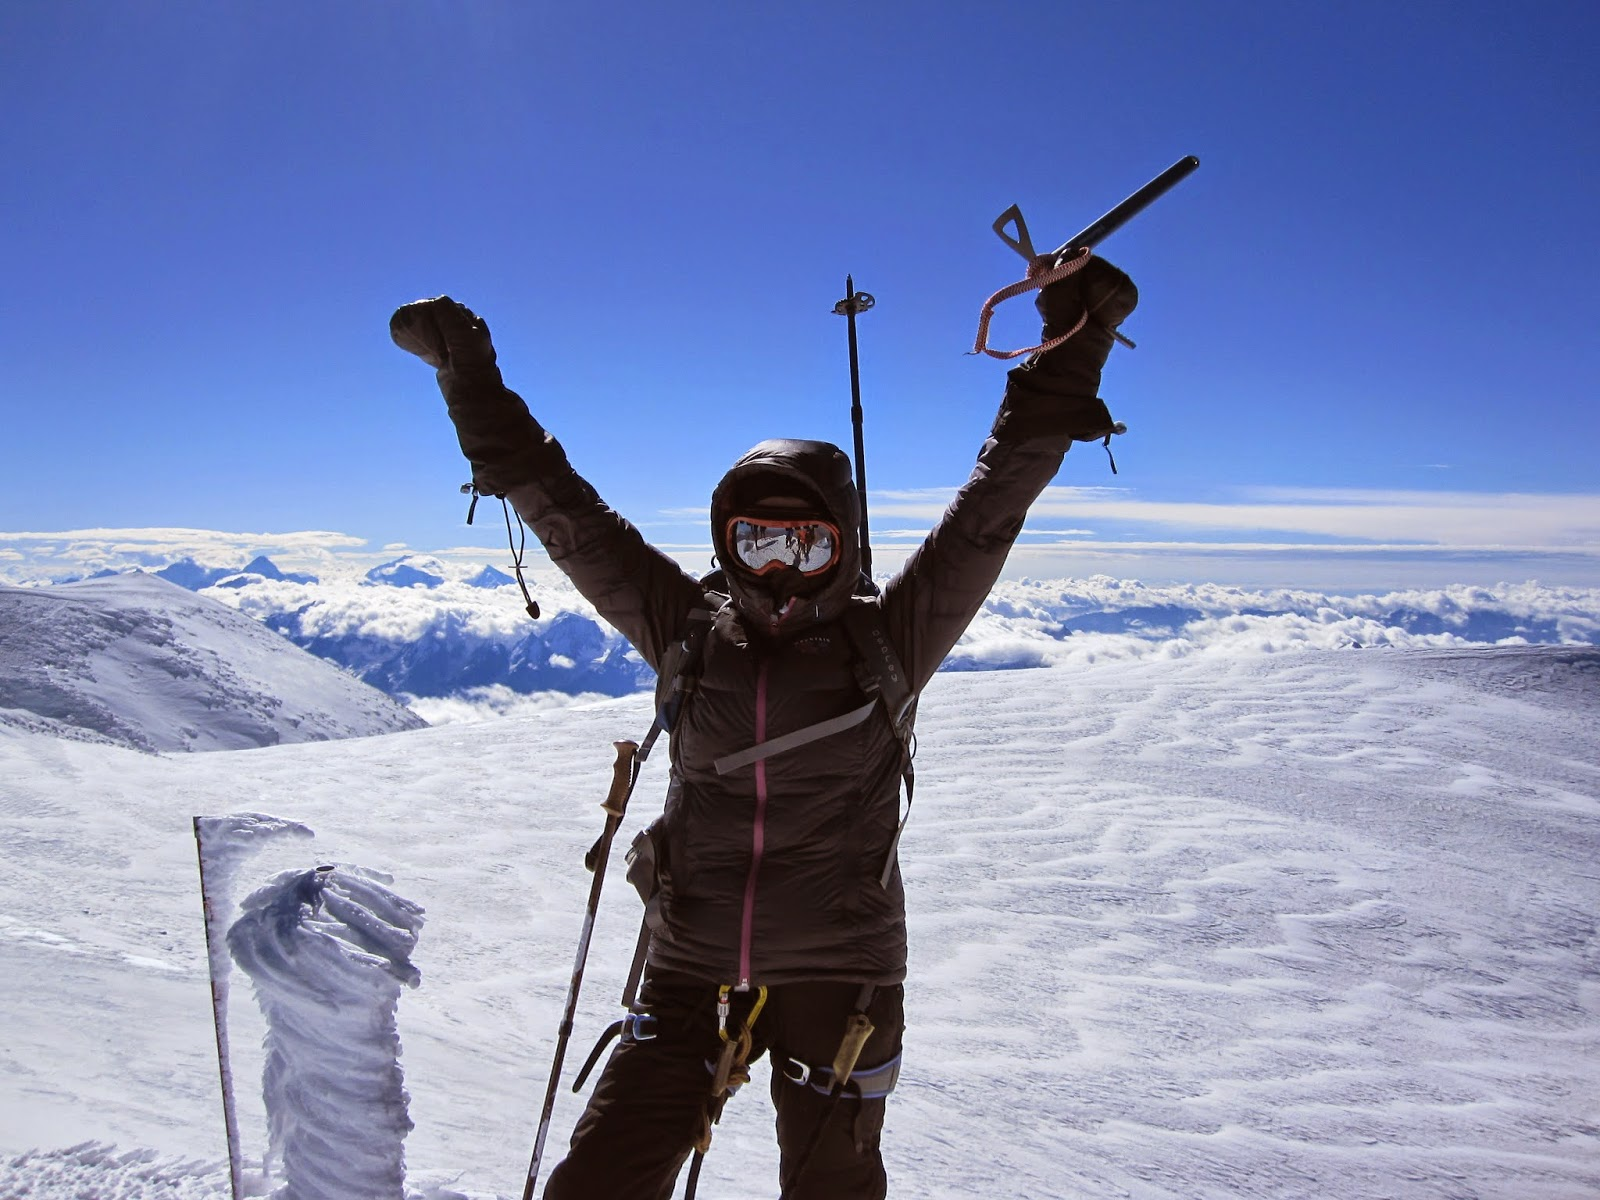 I made it to the summit of Mount Elbrus! The views were amazing.